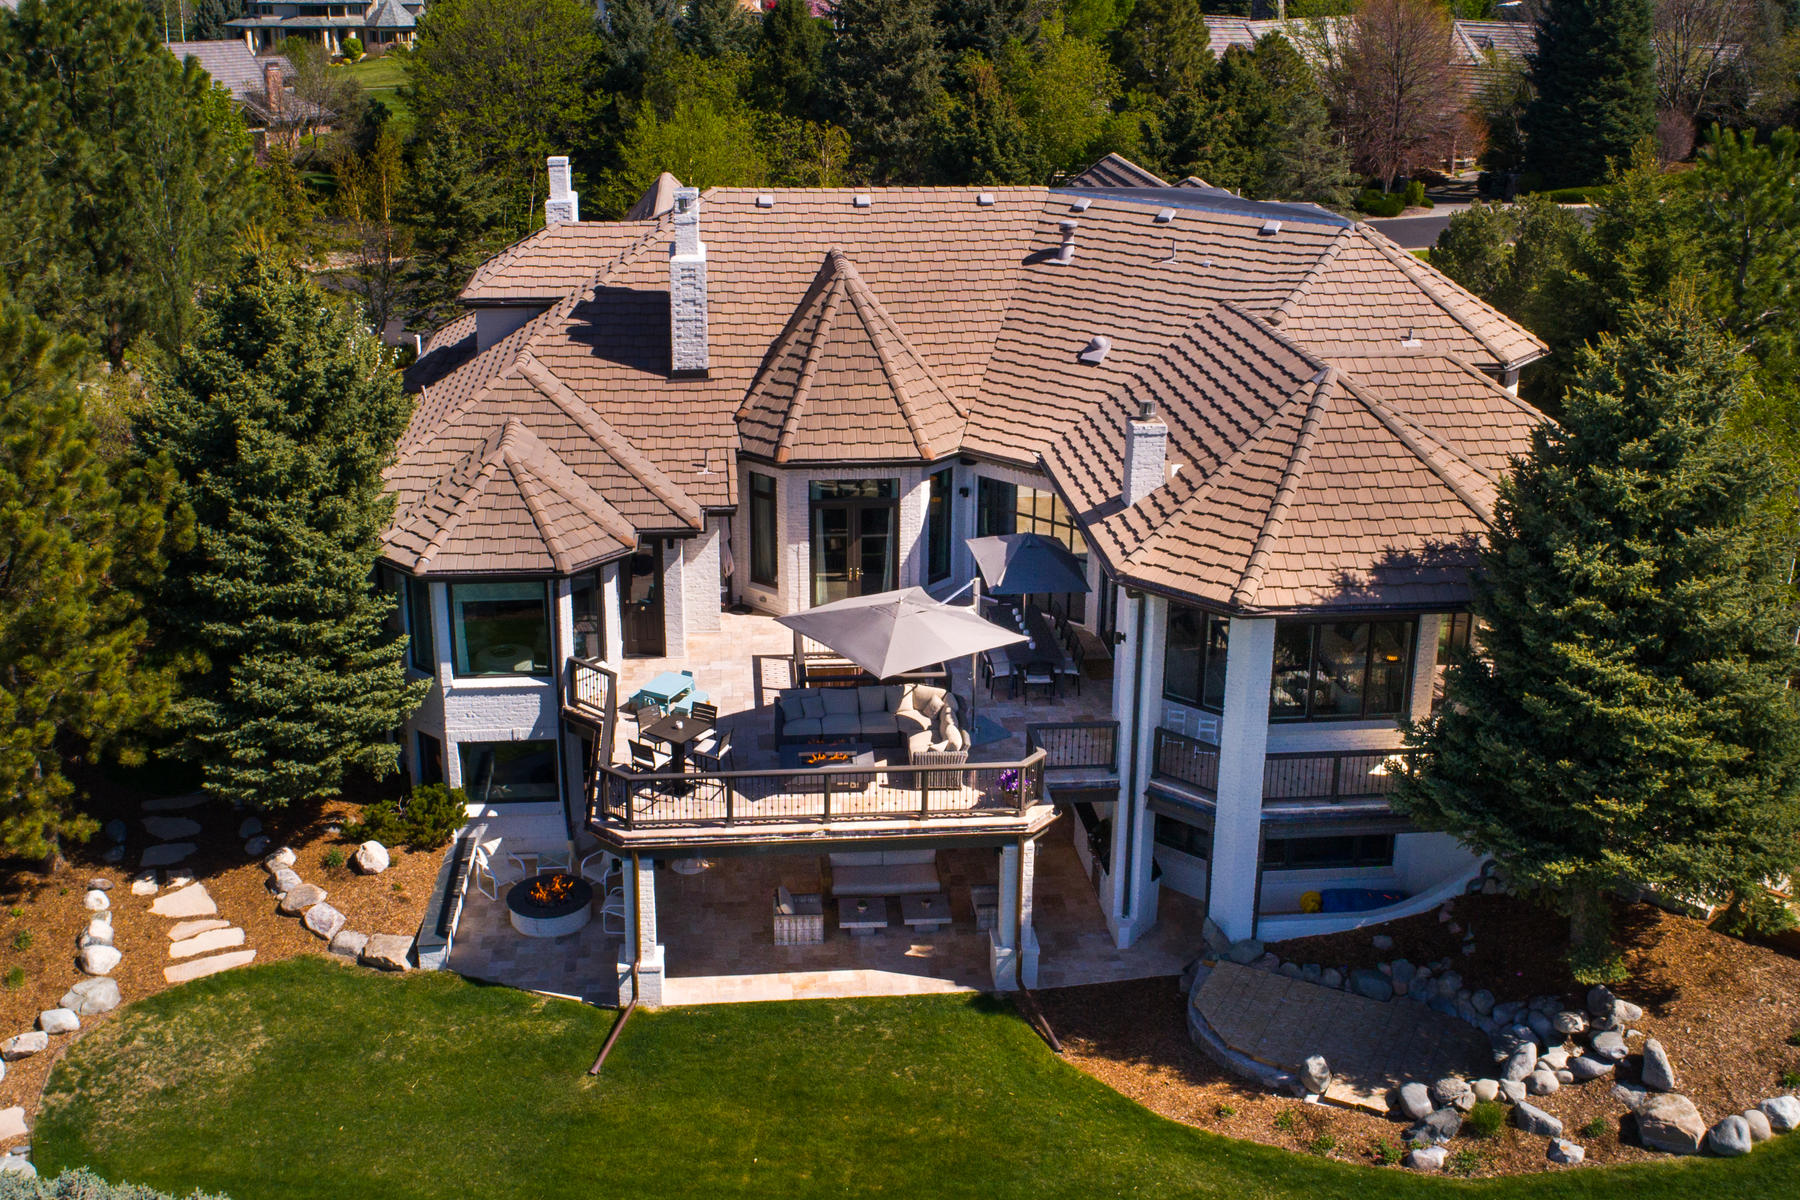 Single Family Home for Active at Timeless Beauty and Captivating Mountain Views 89 Glenmoor Place Cherry Hills Village, Colorado 80113 United States